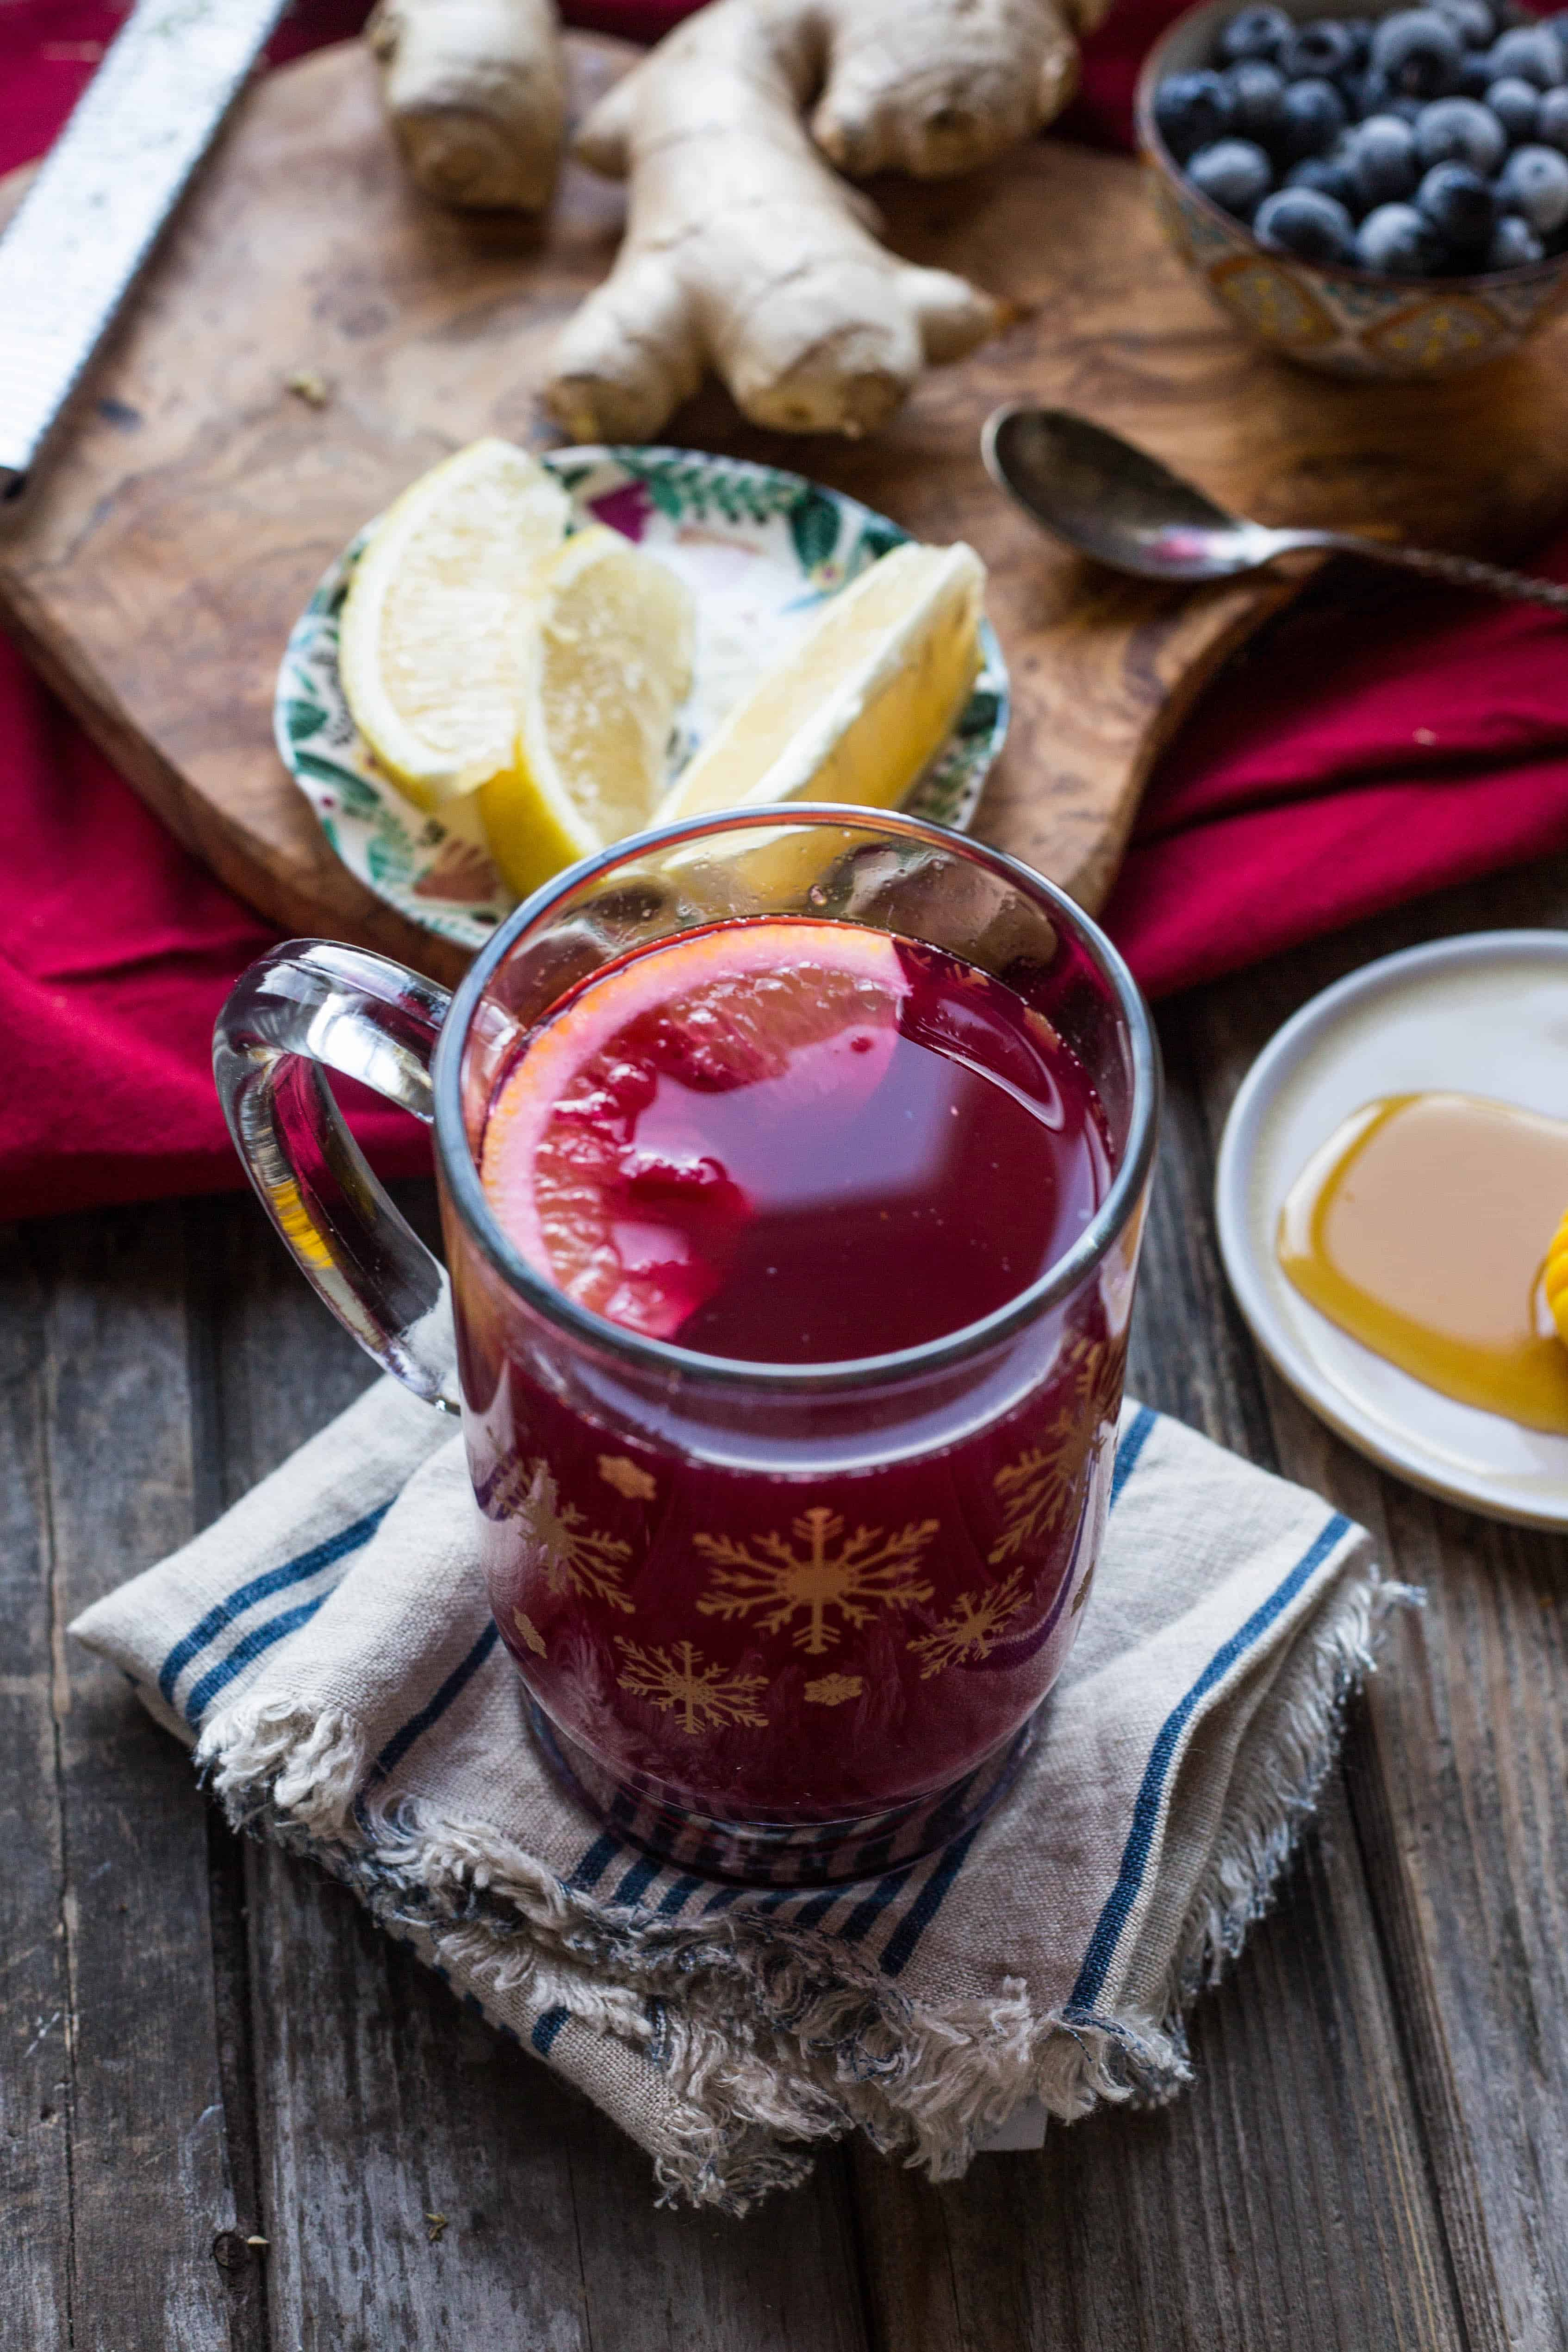 A mug of blueberry ginger hot toddy next to a plate of lemon wedges.